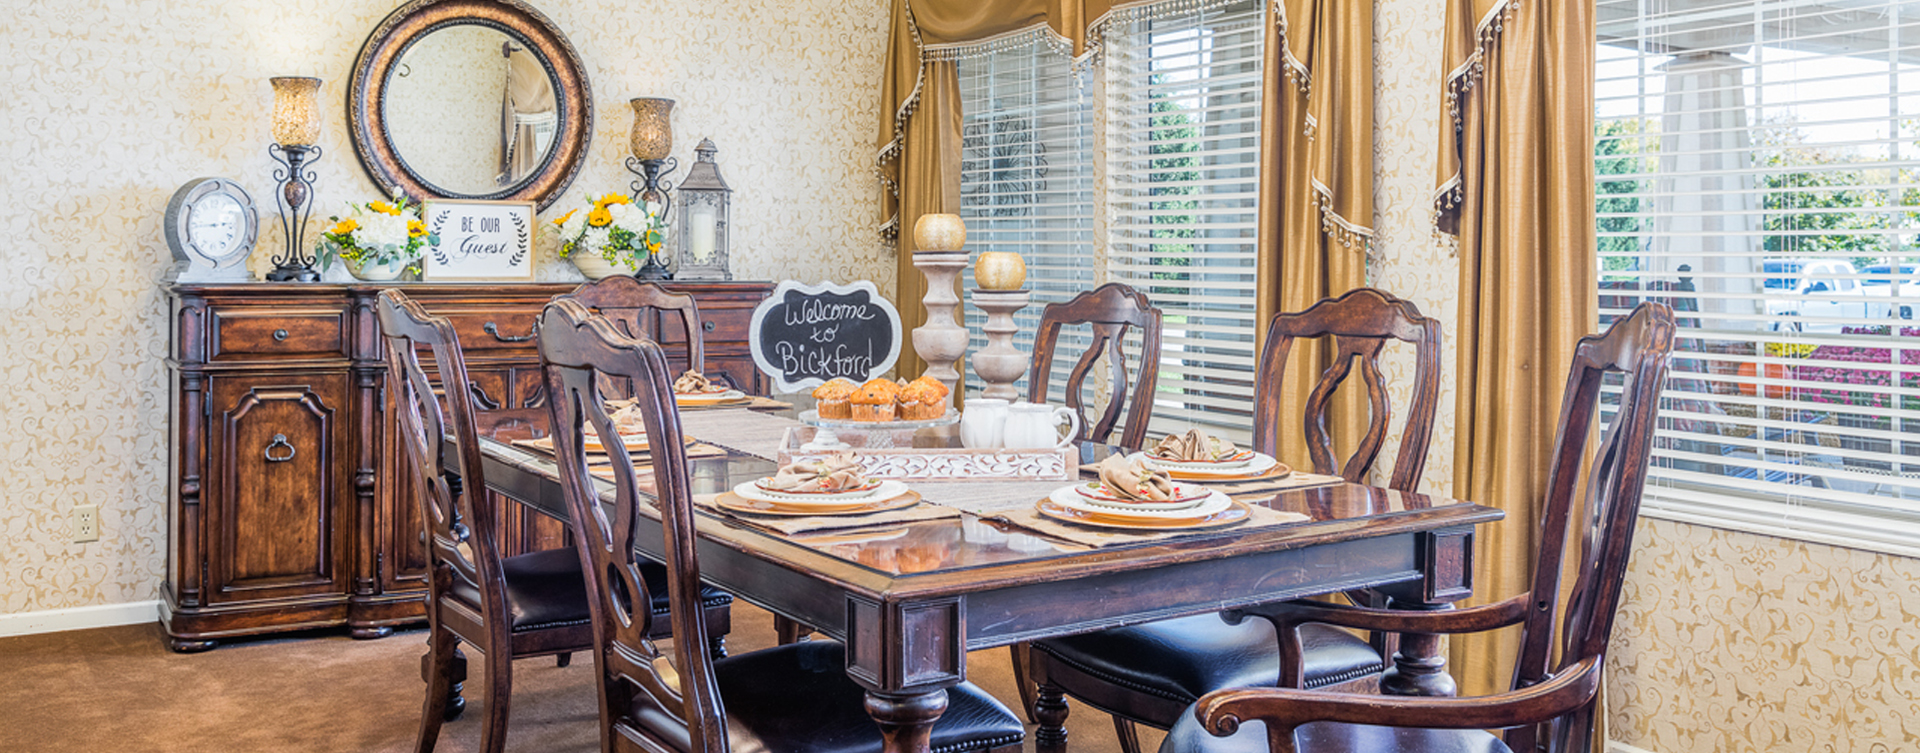 Have fun with themed and holiday meals in the private dining room at Bickford of Ames